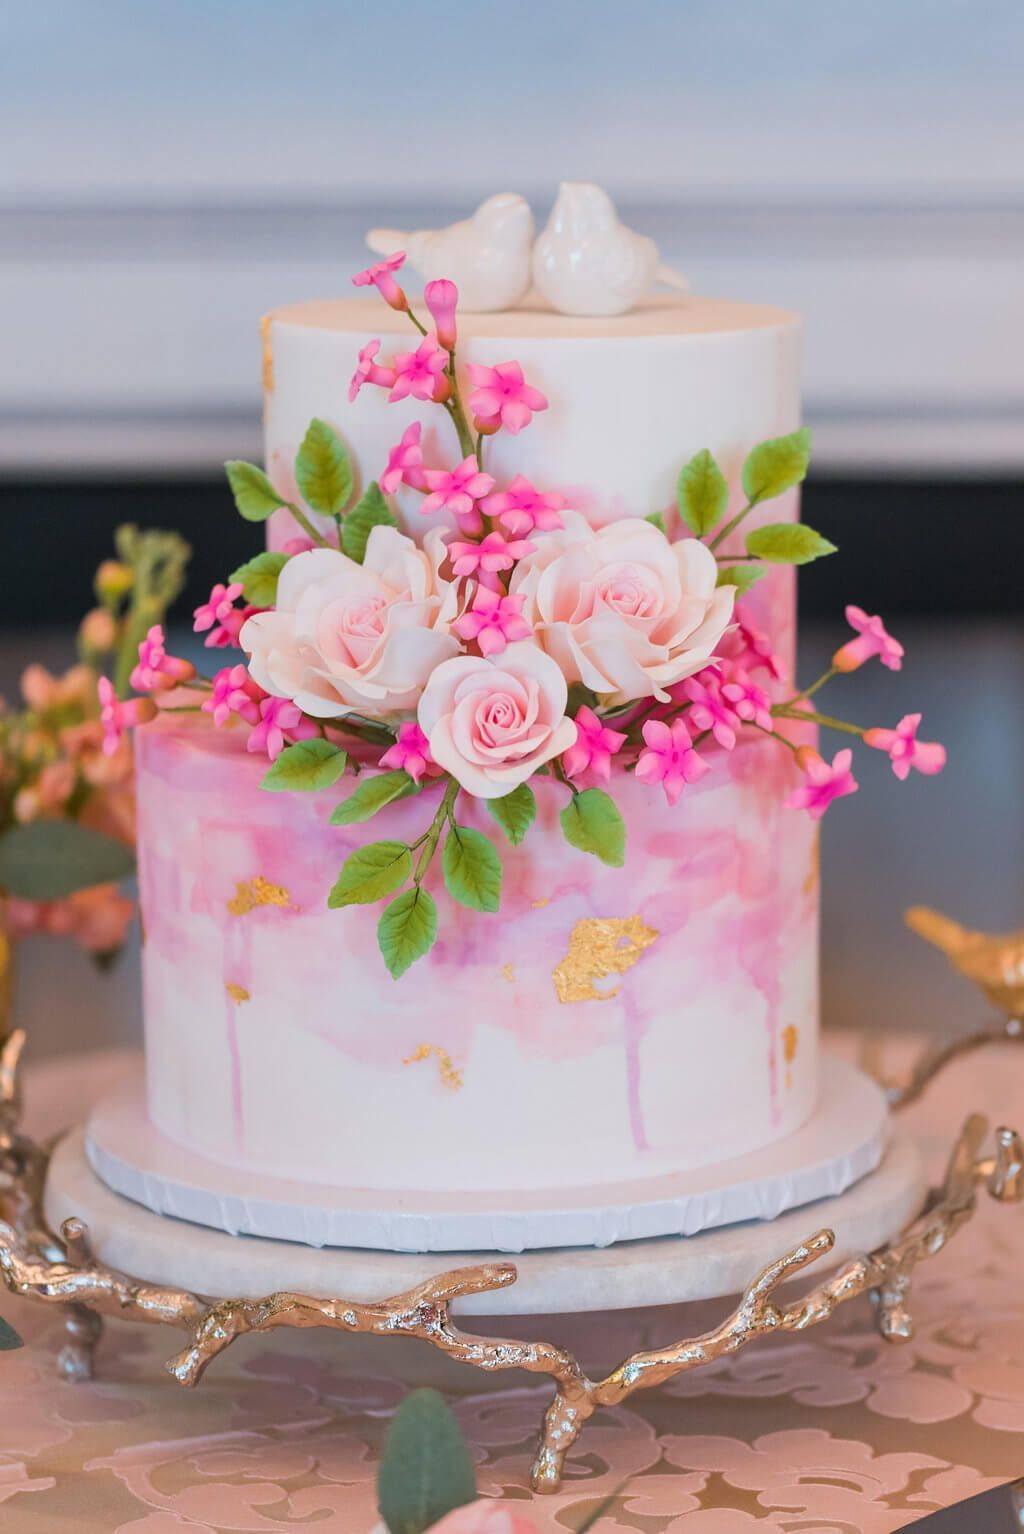 Perfectly Pink Wedding Cake with Love Birds #weddingcakes | Cakes ...